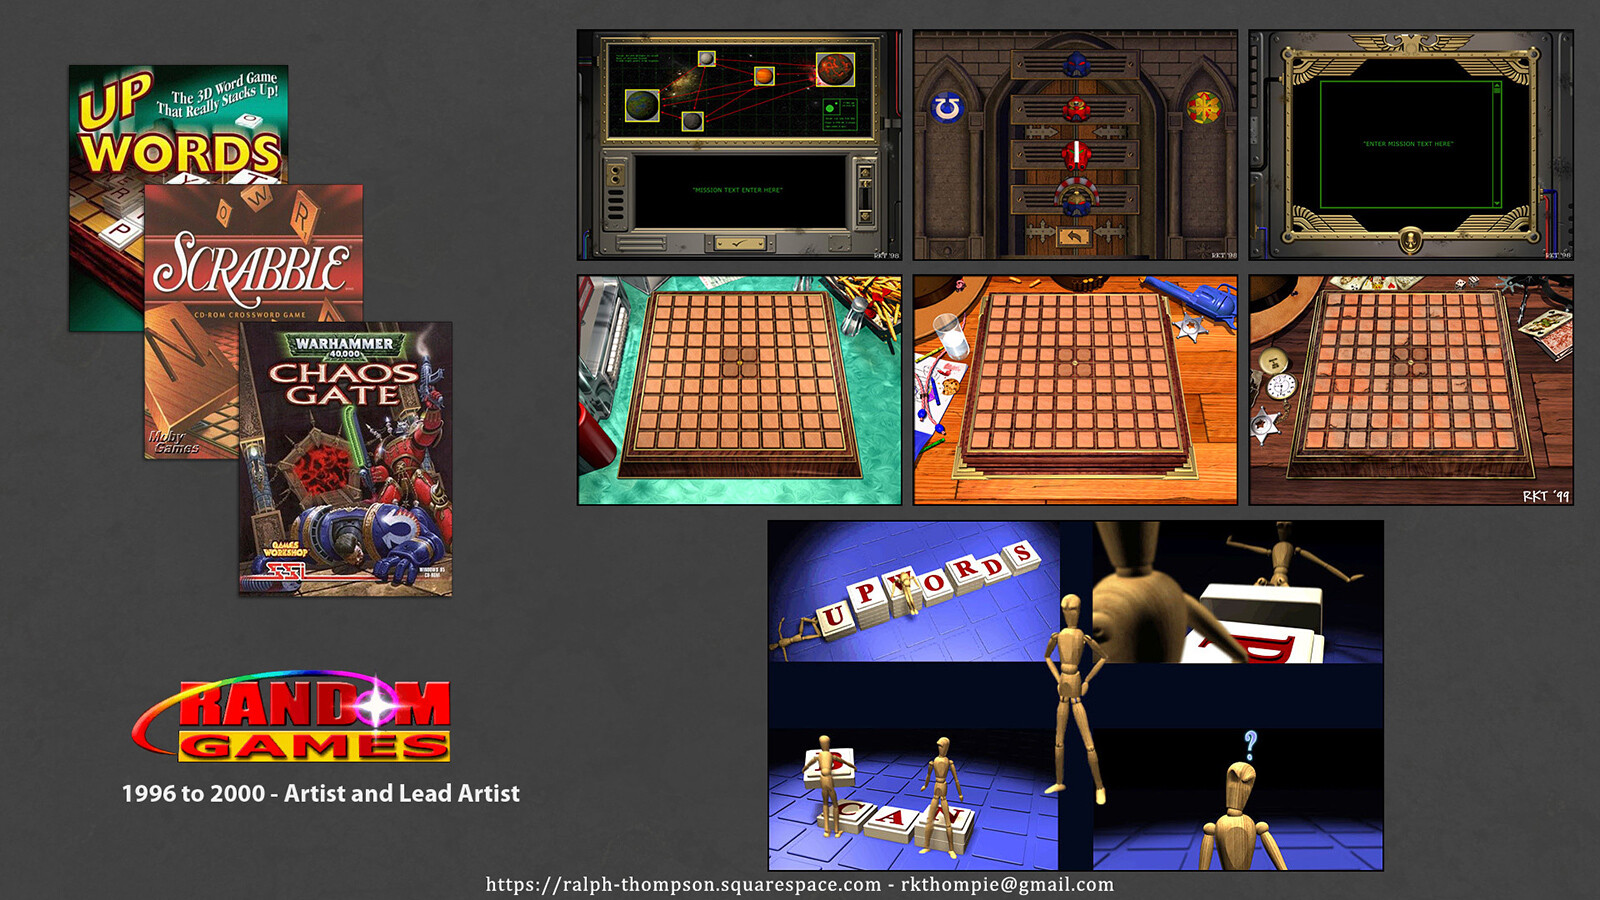 Shots from early work in my career, while at Random Games.